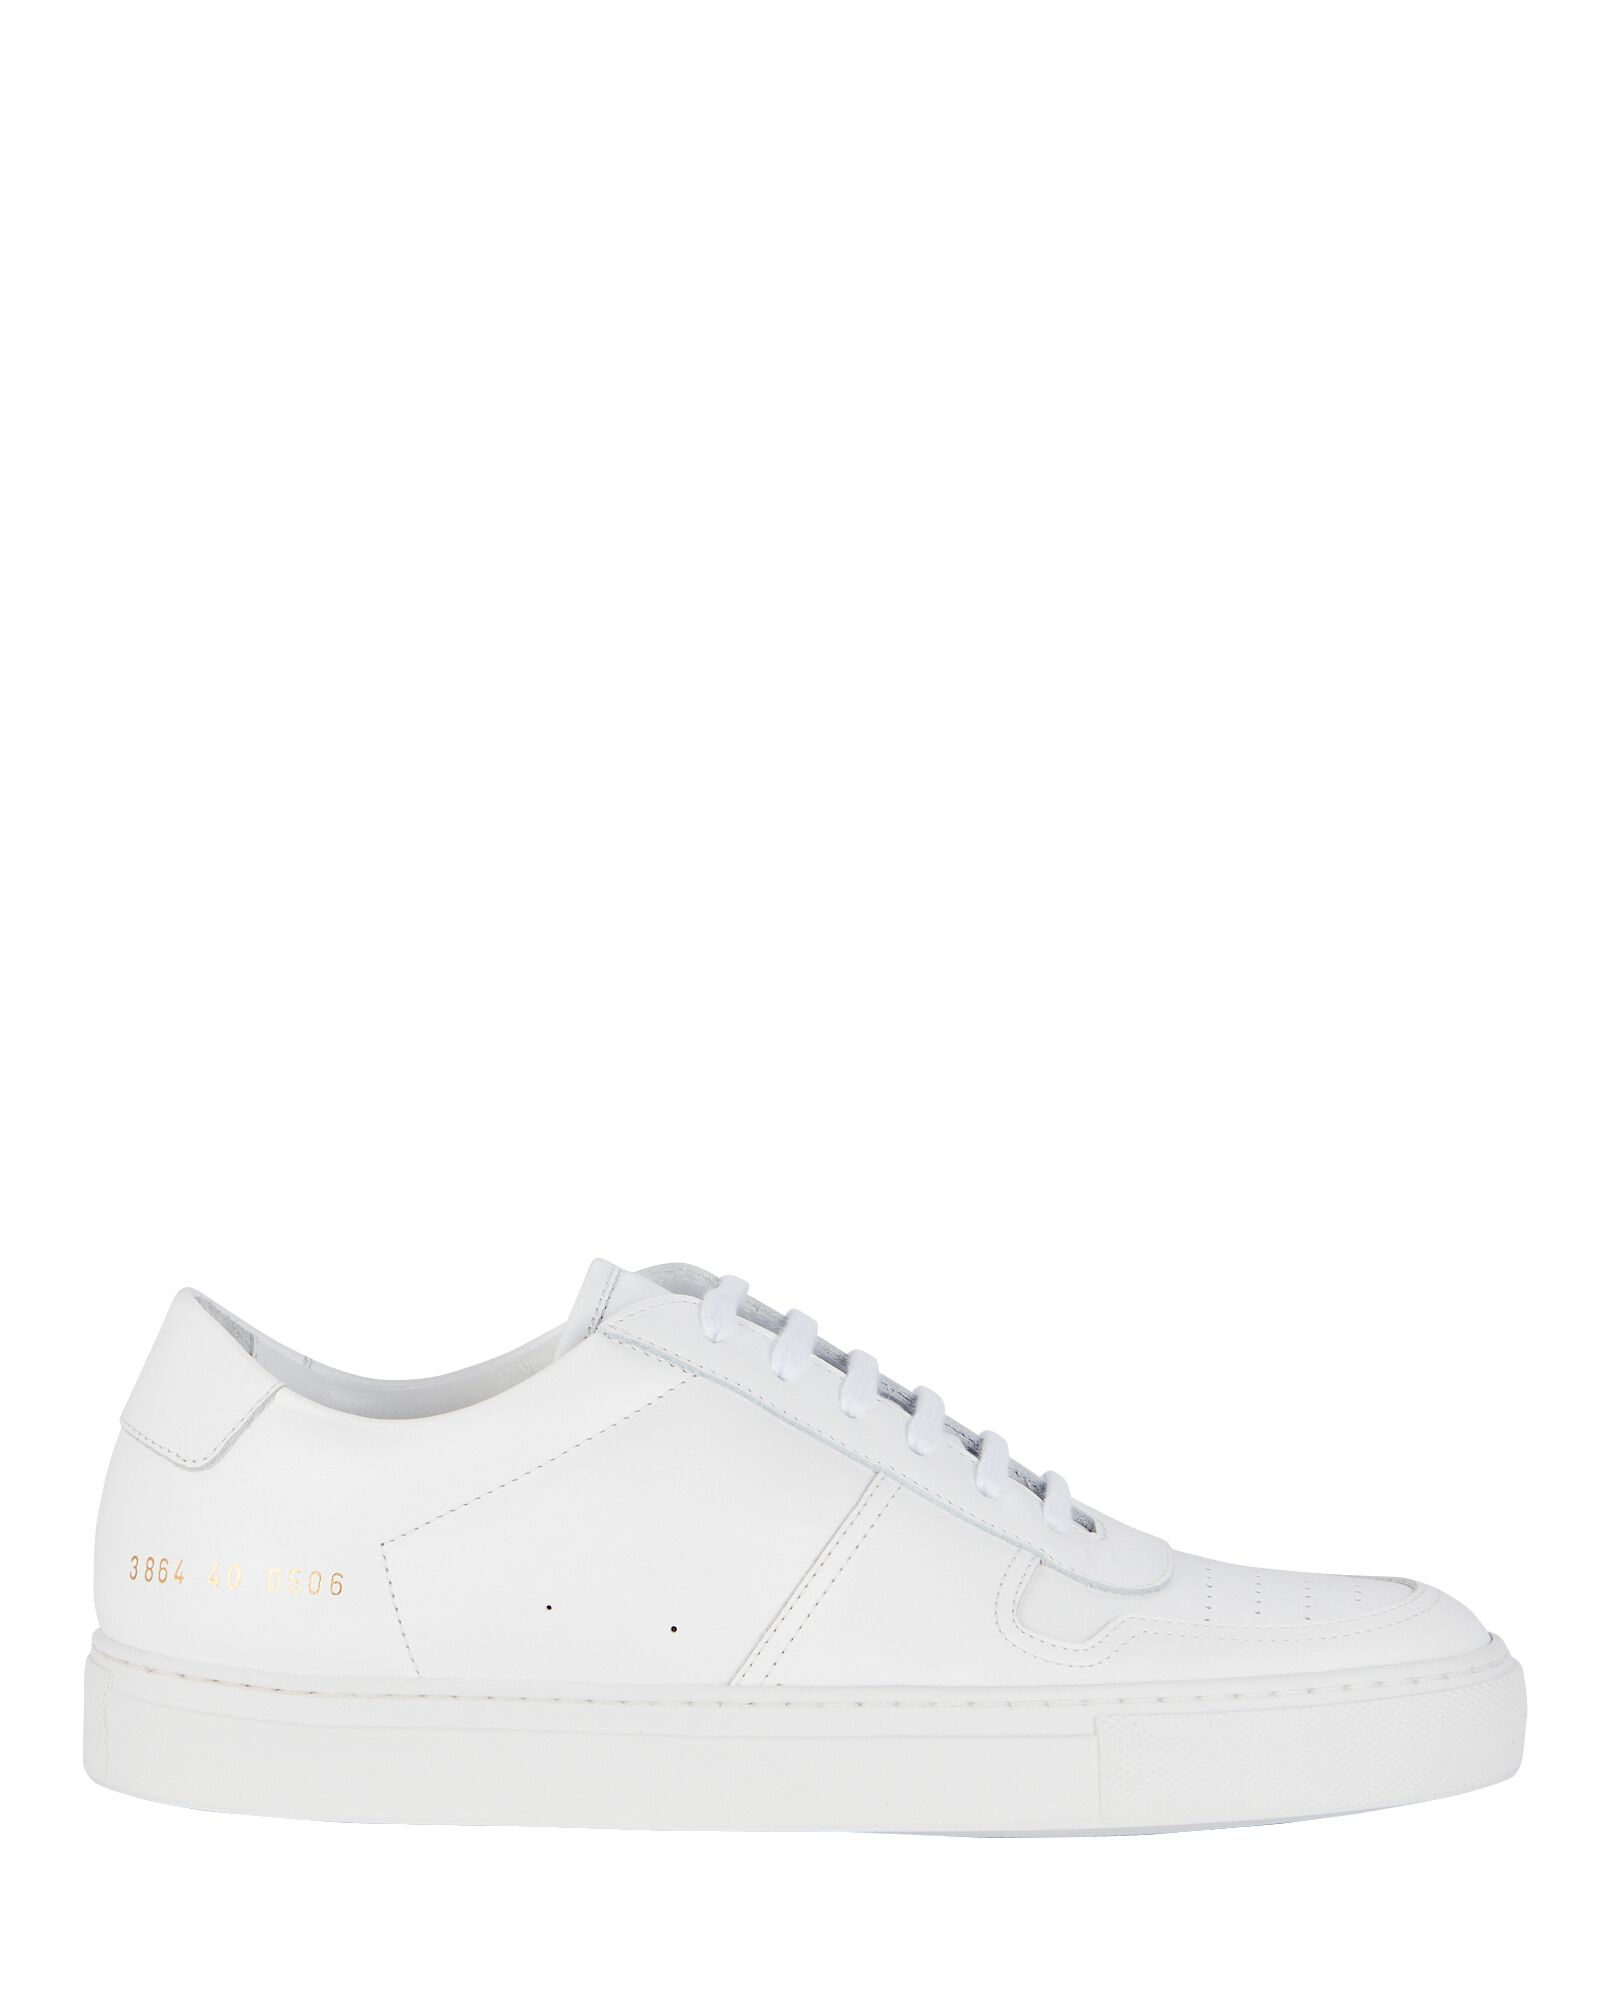 BBall 90 Low-Top Sneakers, WHITE, hi-res